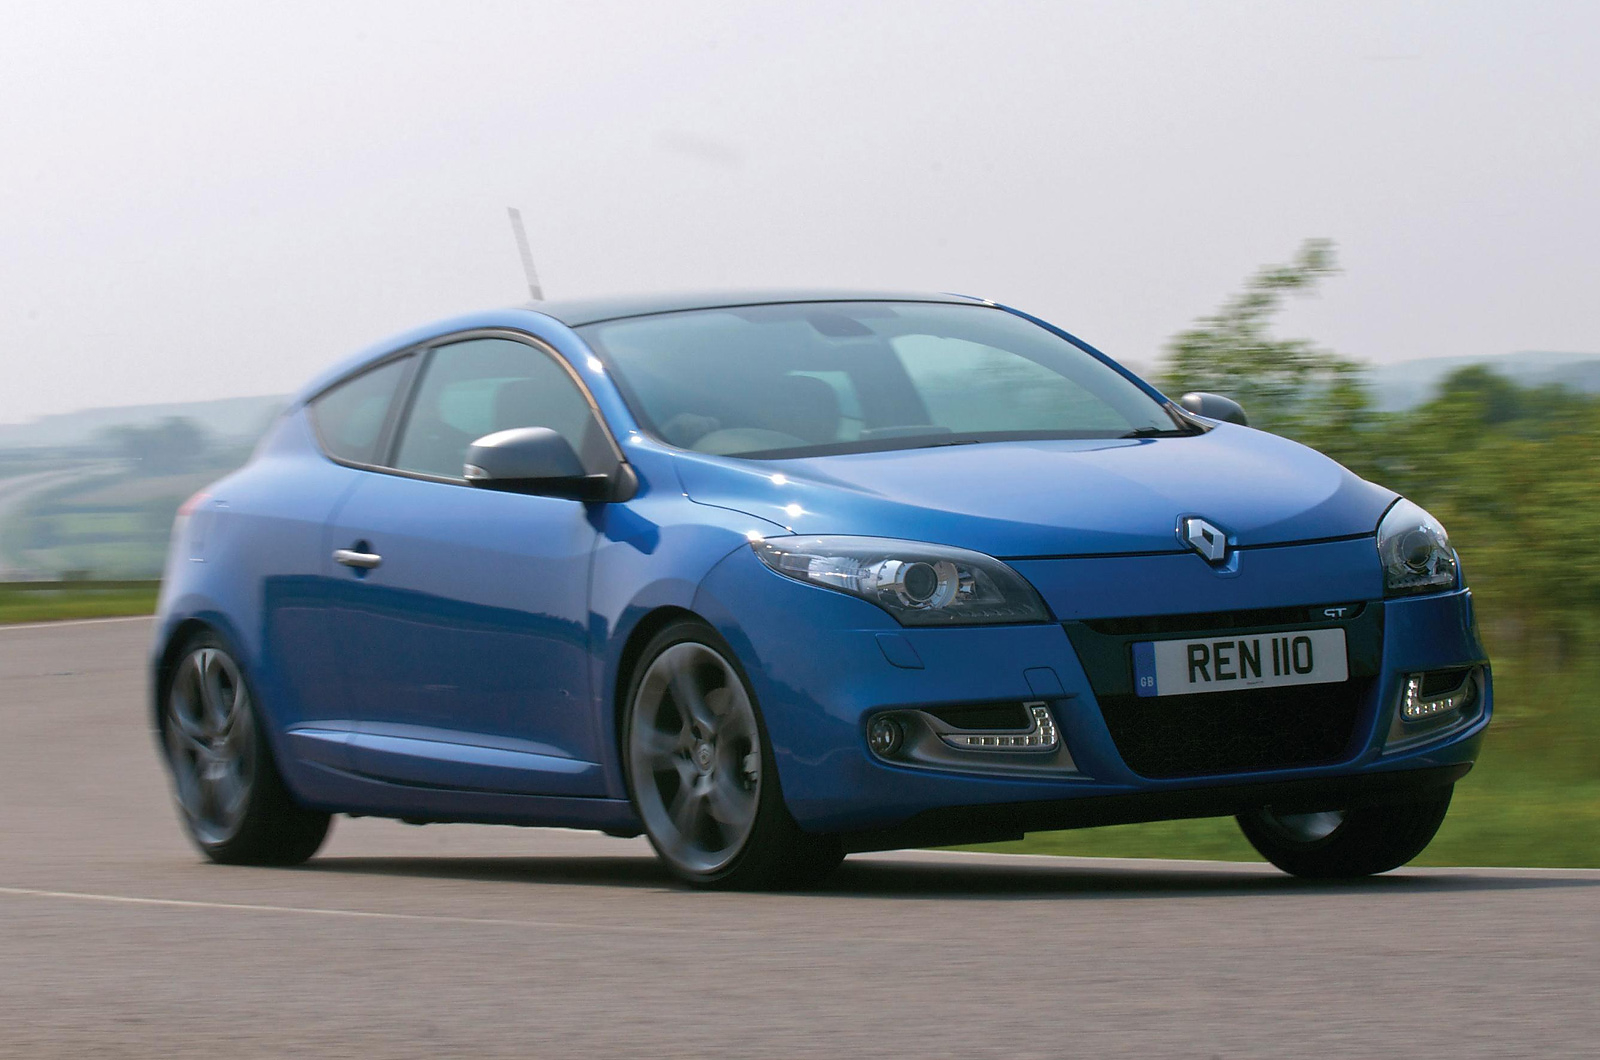 first drive review renault megane 1 5 dci 110 gt line. Black Bedroom Furniture Sets. Home Design Ideas